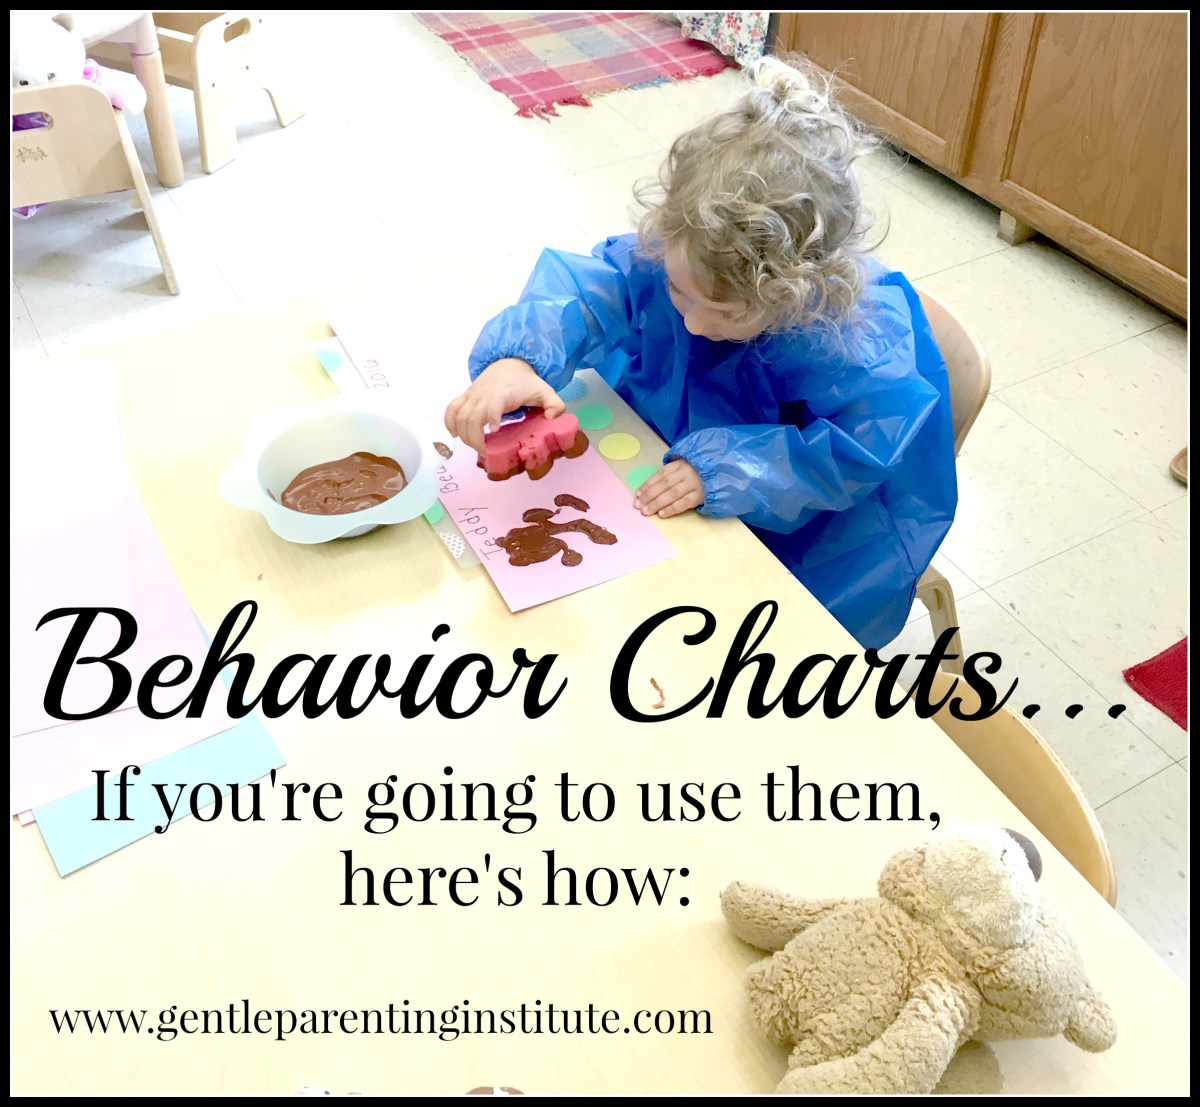 Behavior Charts...if you're going to use them, here's how: